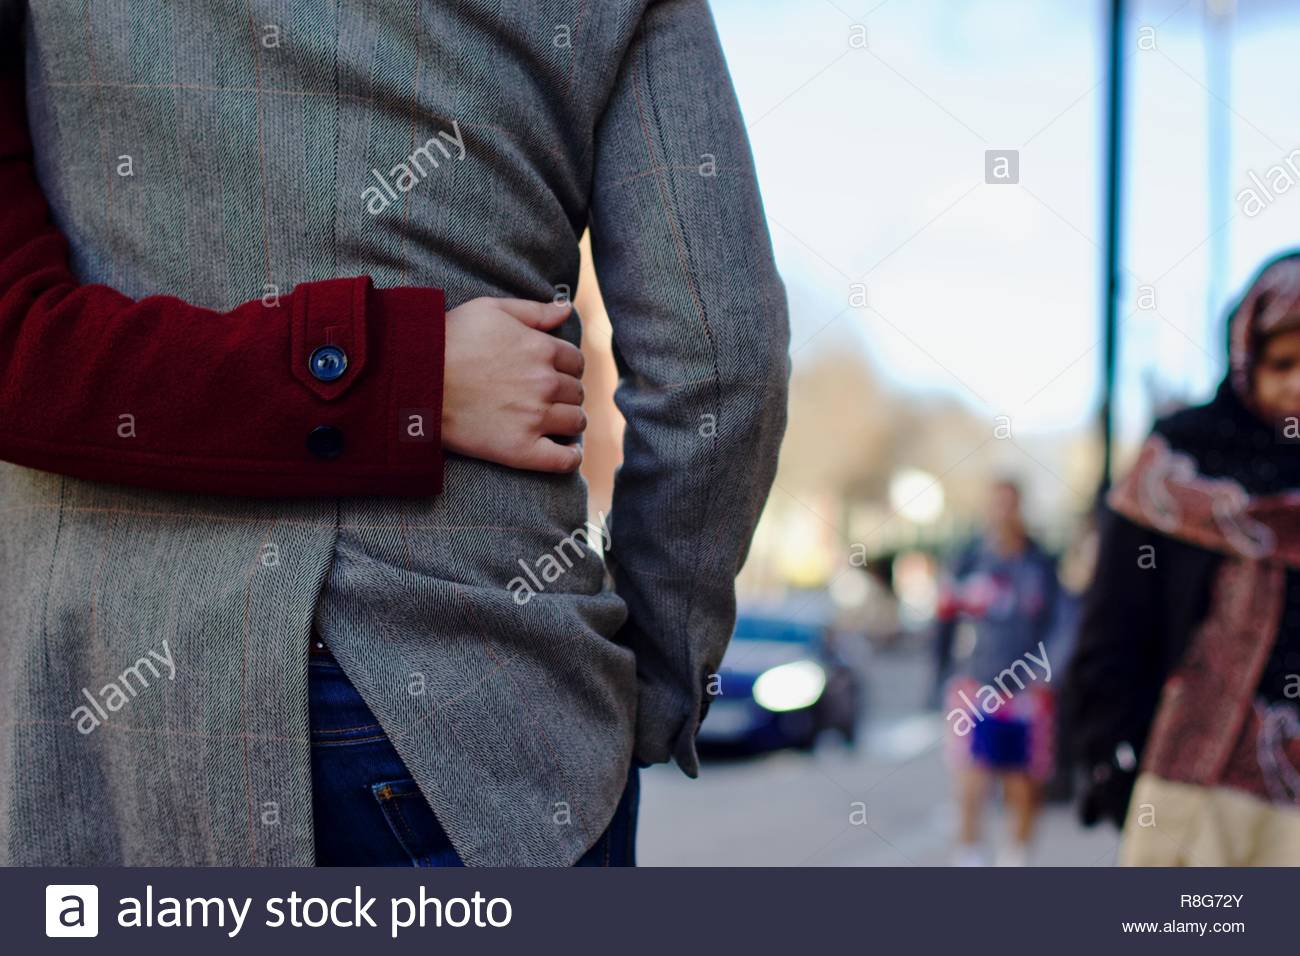 A woman in a red coat putting her arm around her partner's waist in embrace whilst walking down the street - Stock Image